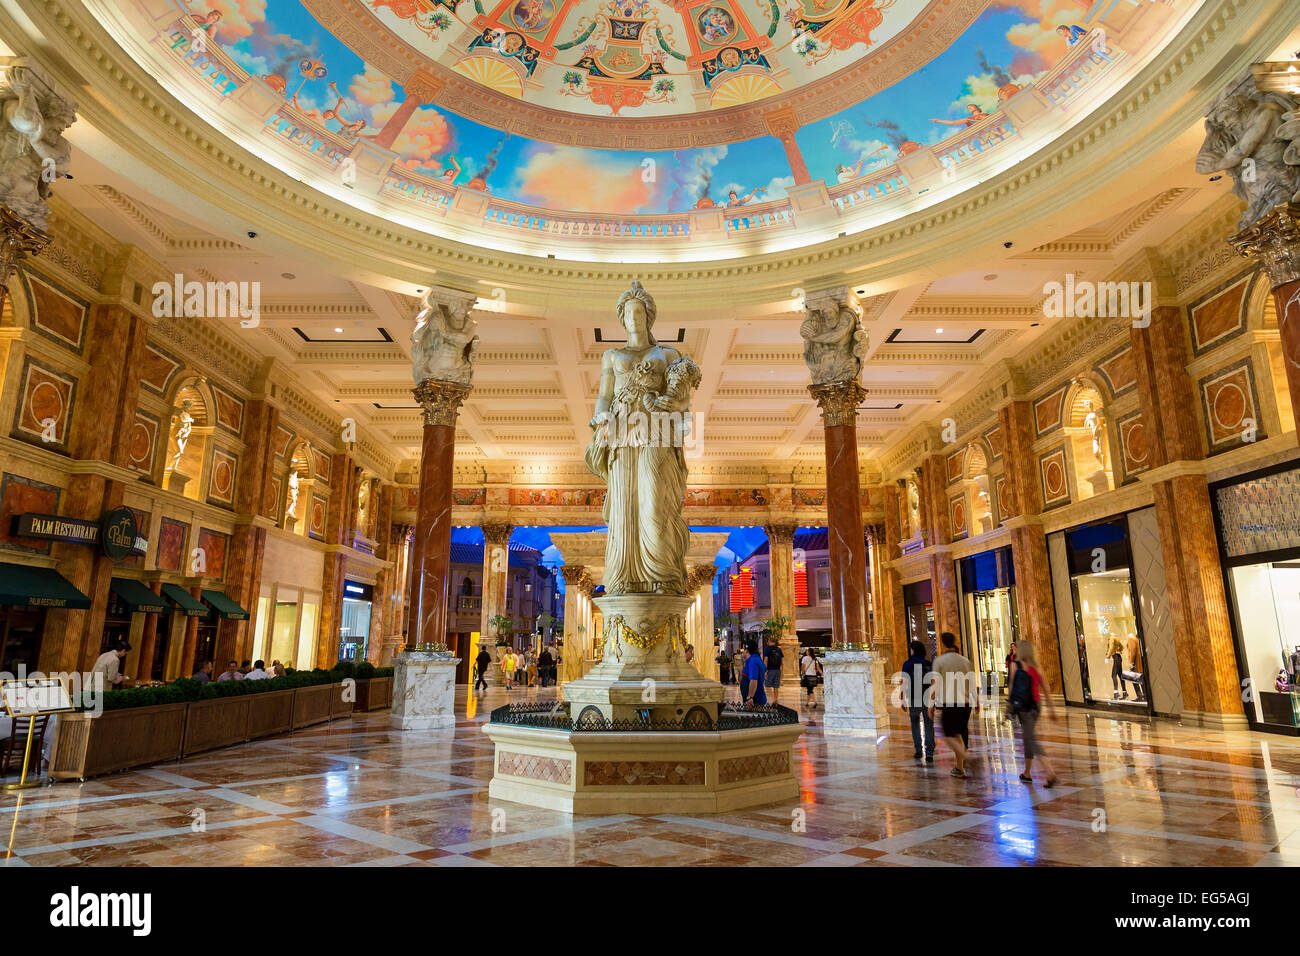 Las vegas caesars palace shopping mall stock photo for Arts and crafts stores in las vegas